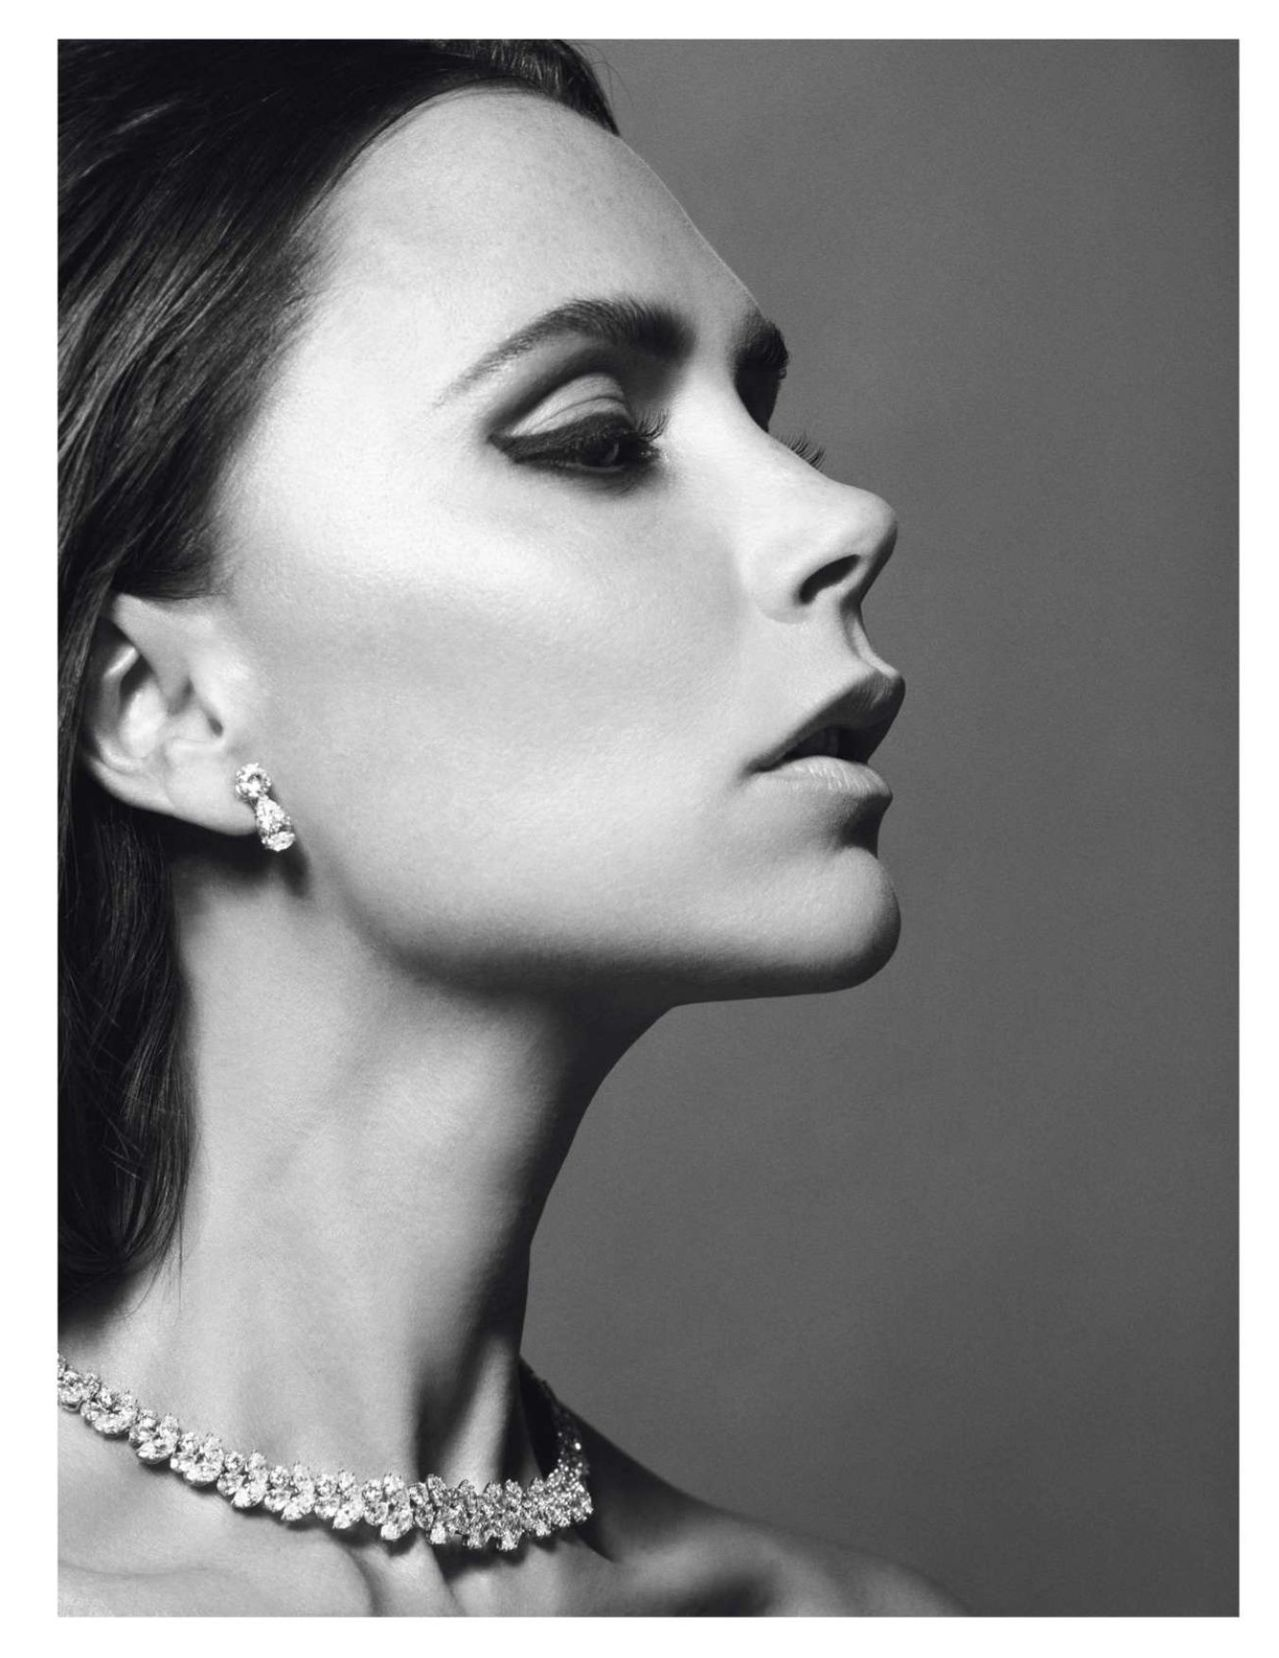 1000+ images about Victoria Beckham on Pinterest ...